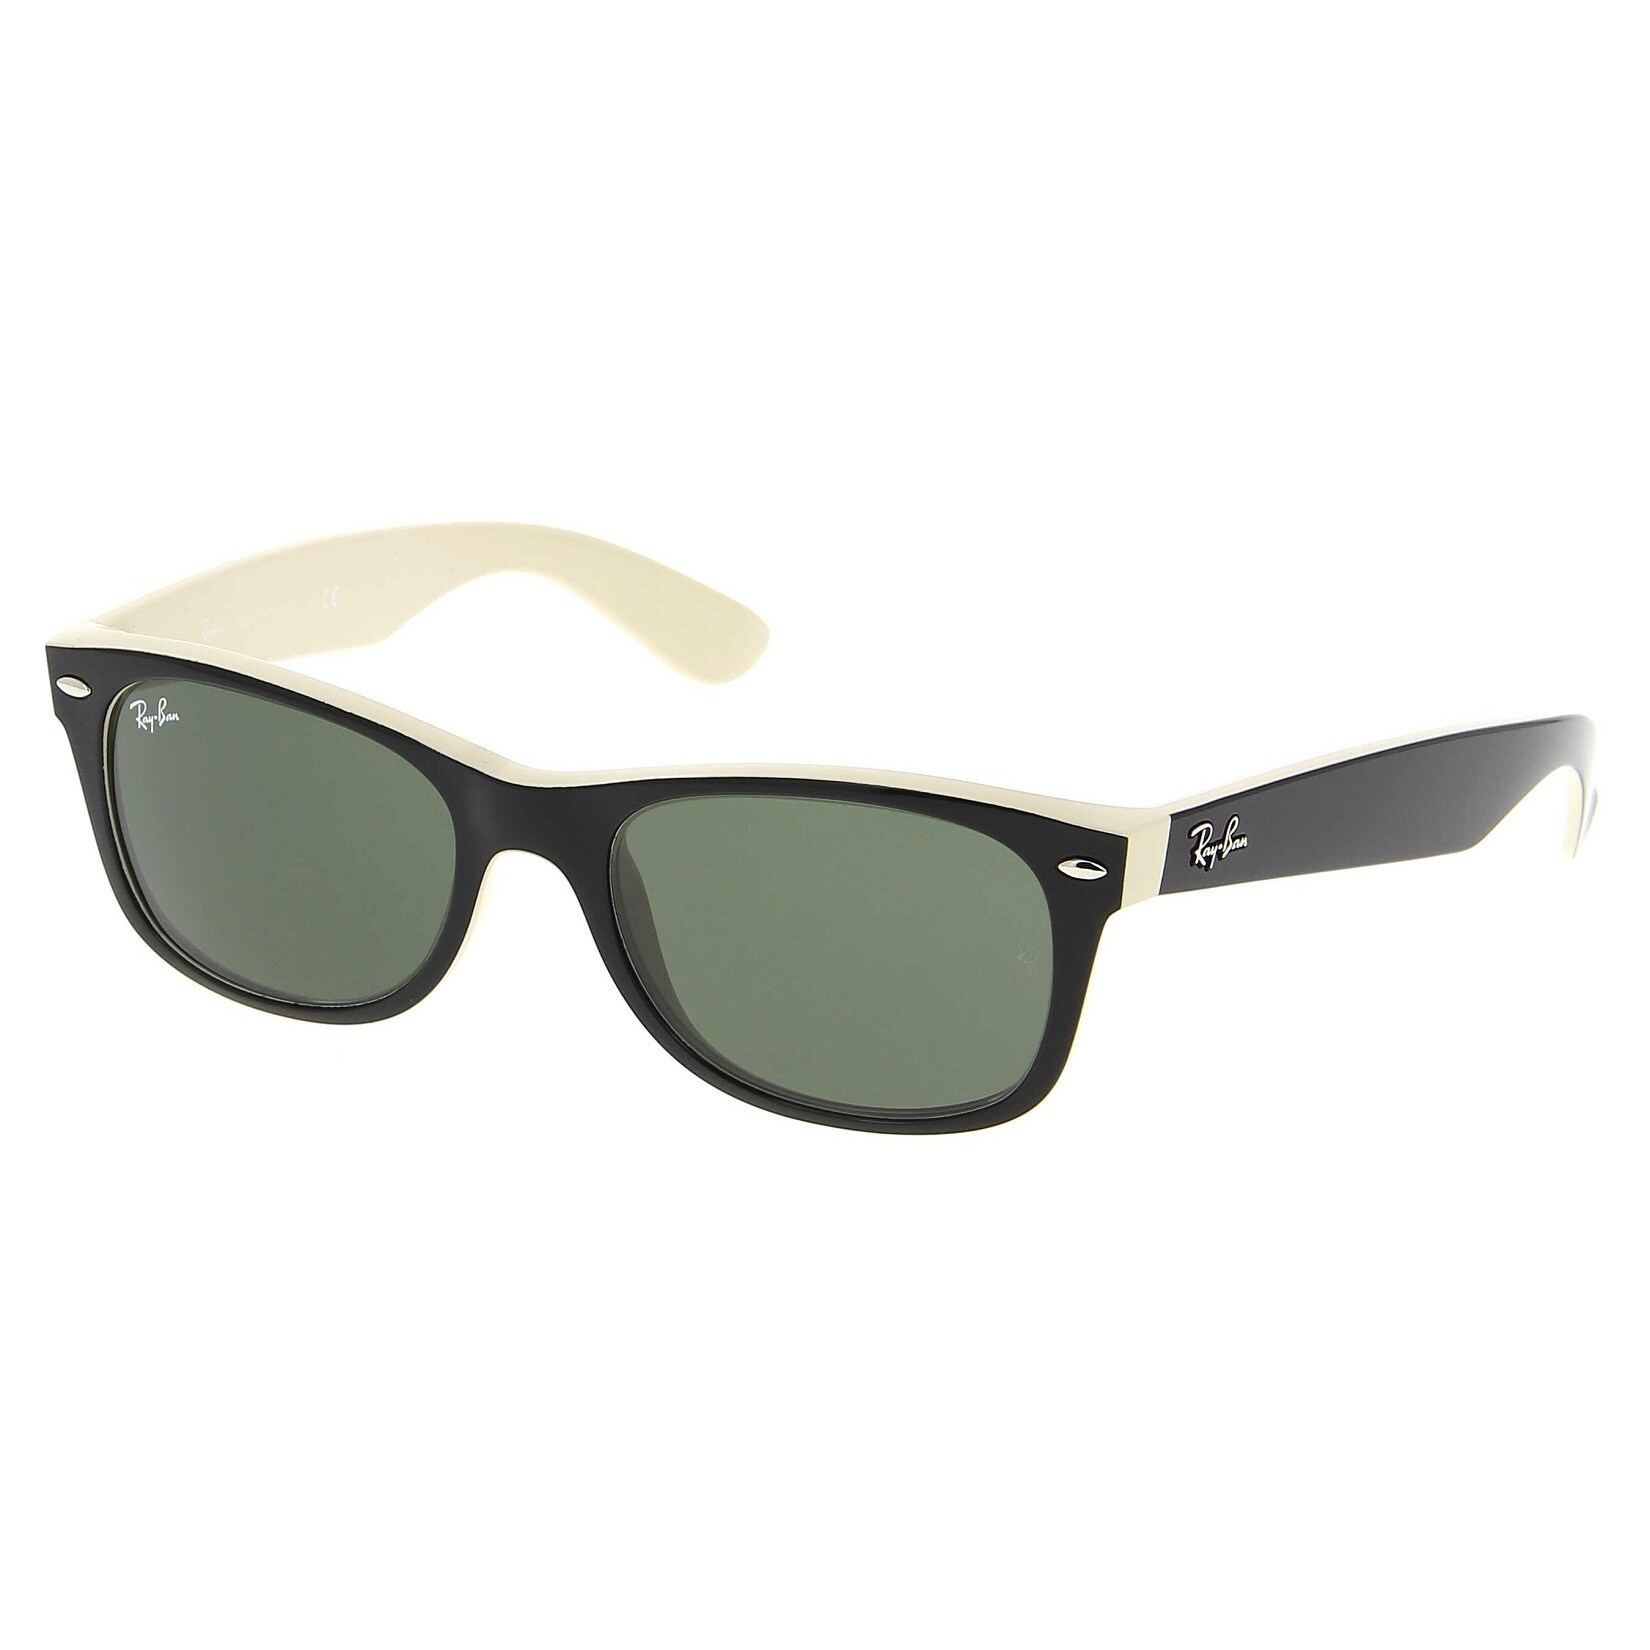 99ab374b1d Ray-Ban RB2132 875 New Wayfarer Color Mix Black Light Brown Frame Green  Classic 52mm Lens Sunglasses